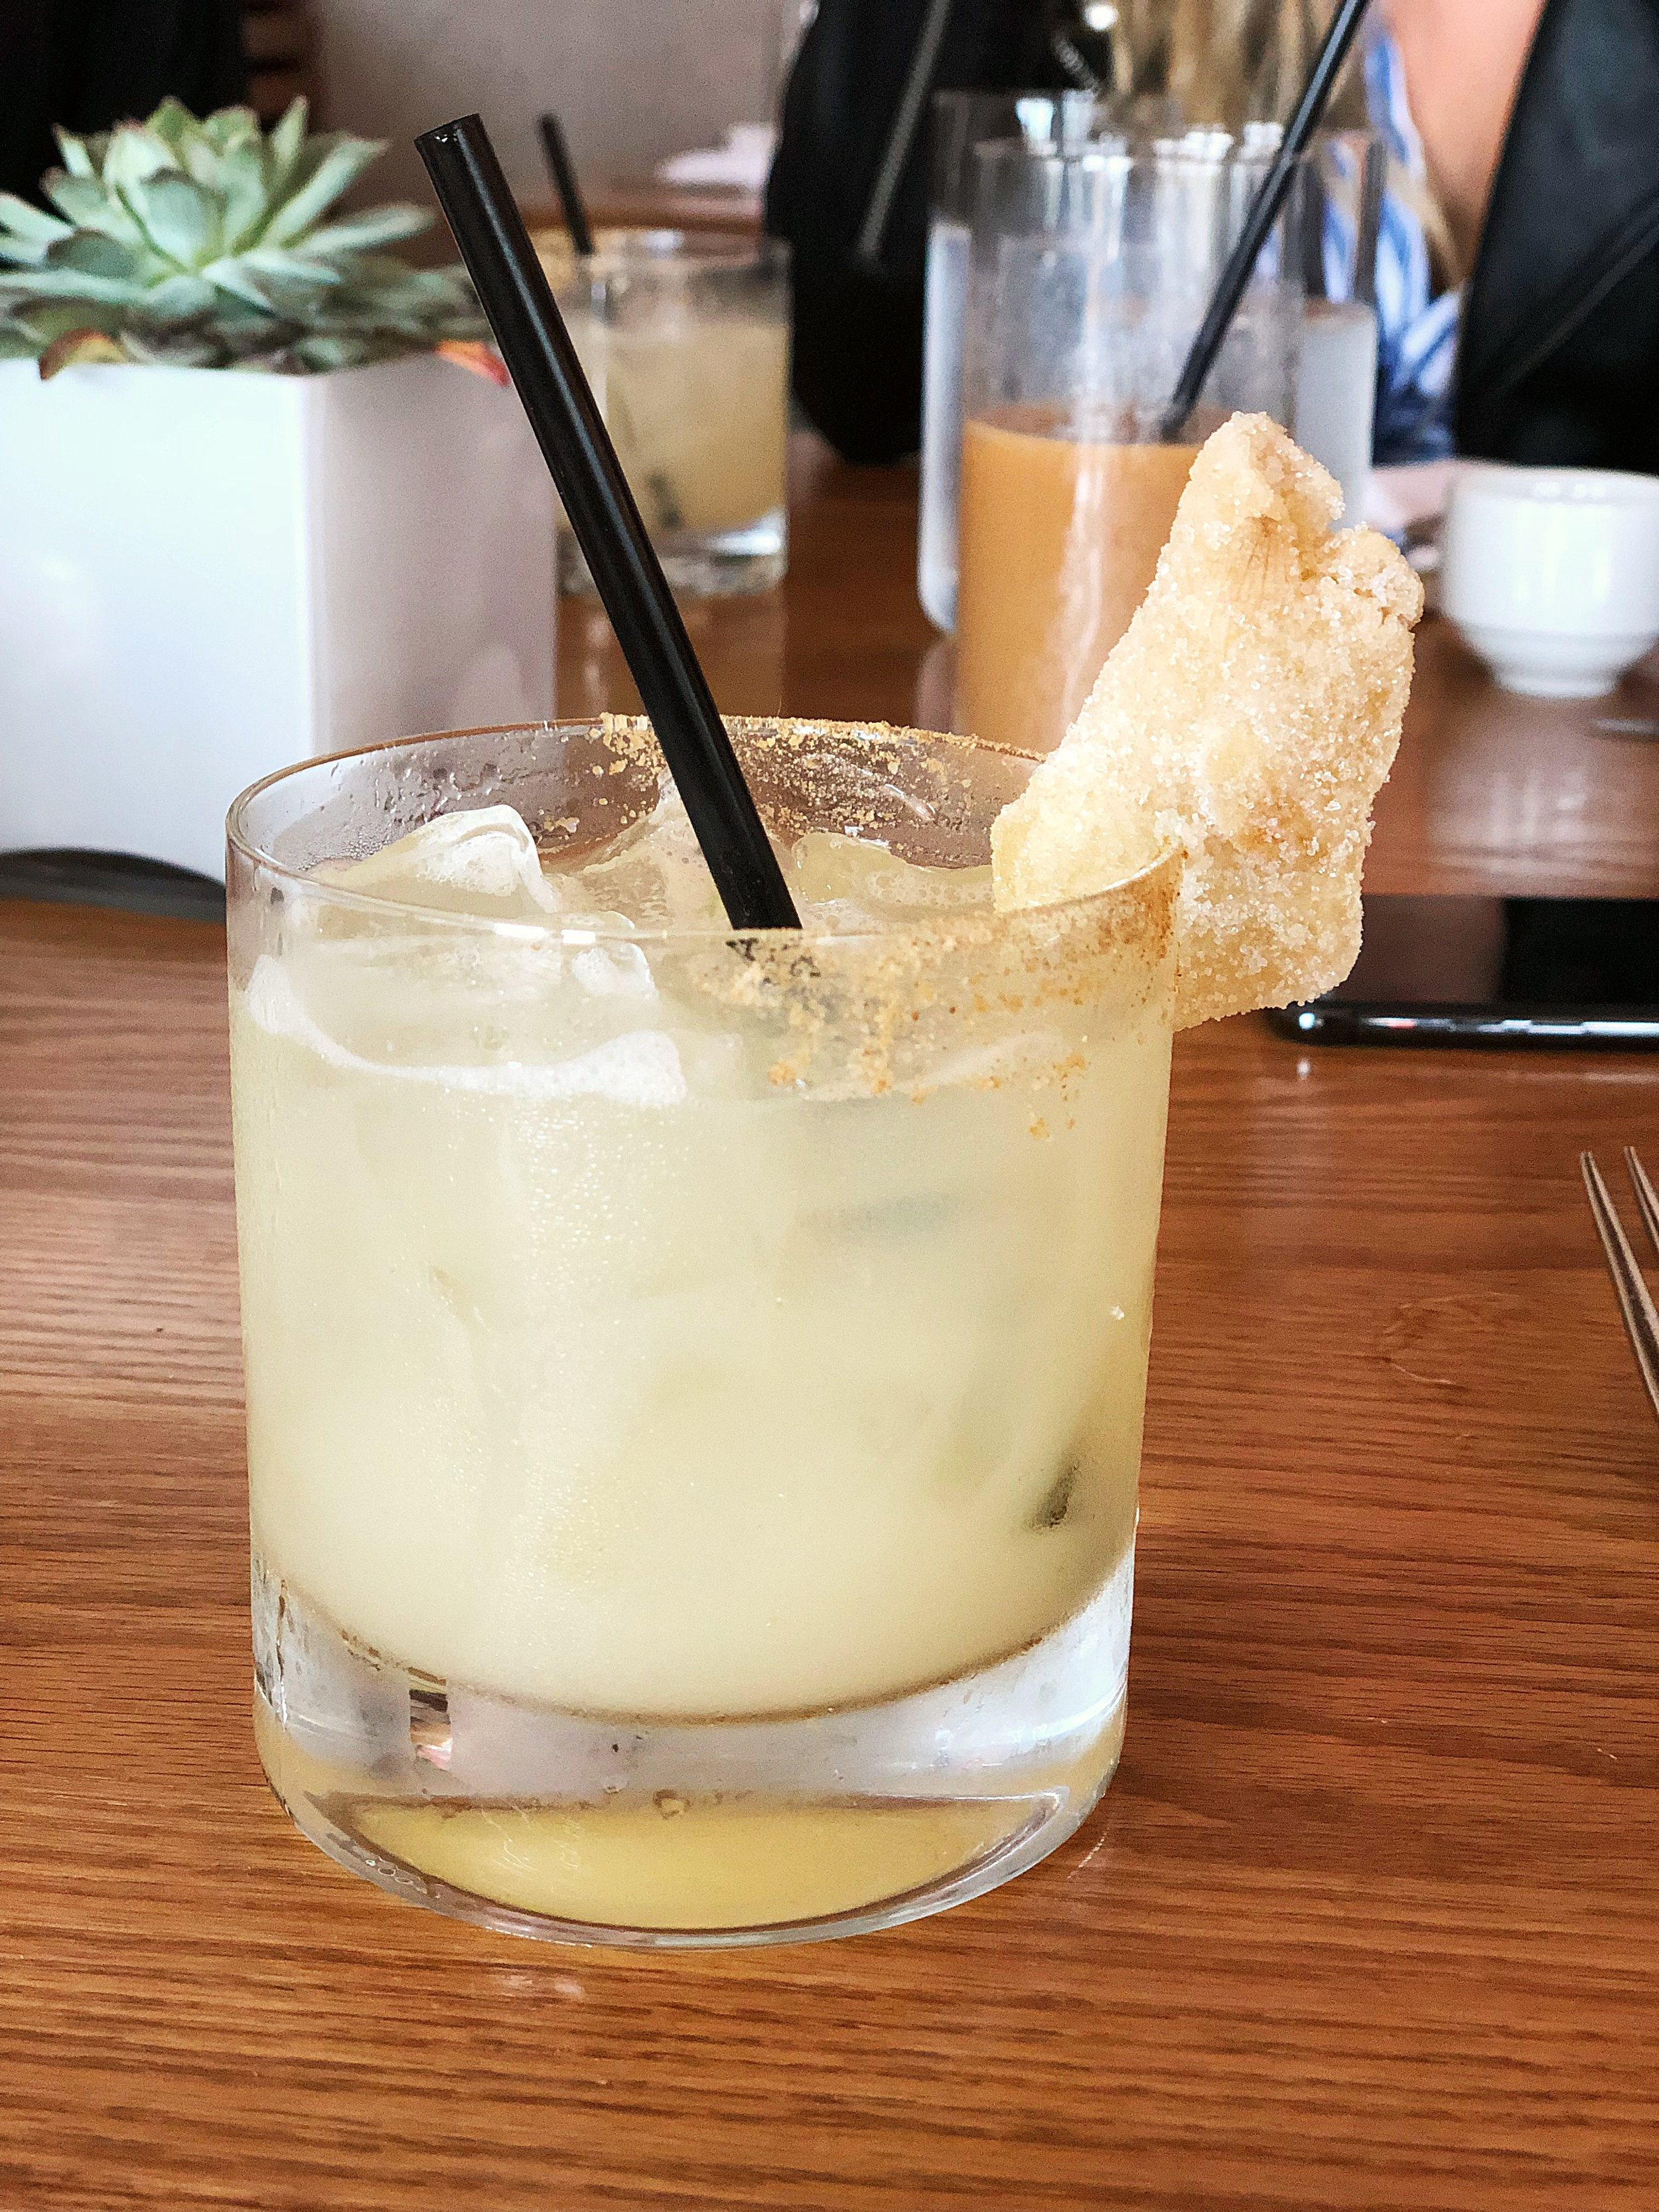 Ginger margarita: ginger infused tequila, lime, cointreau